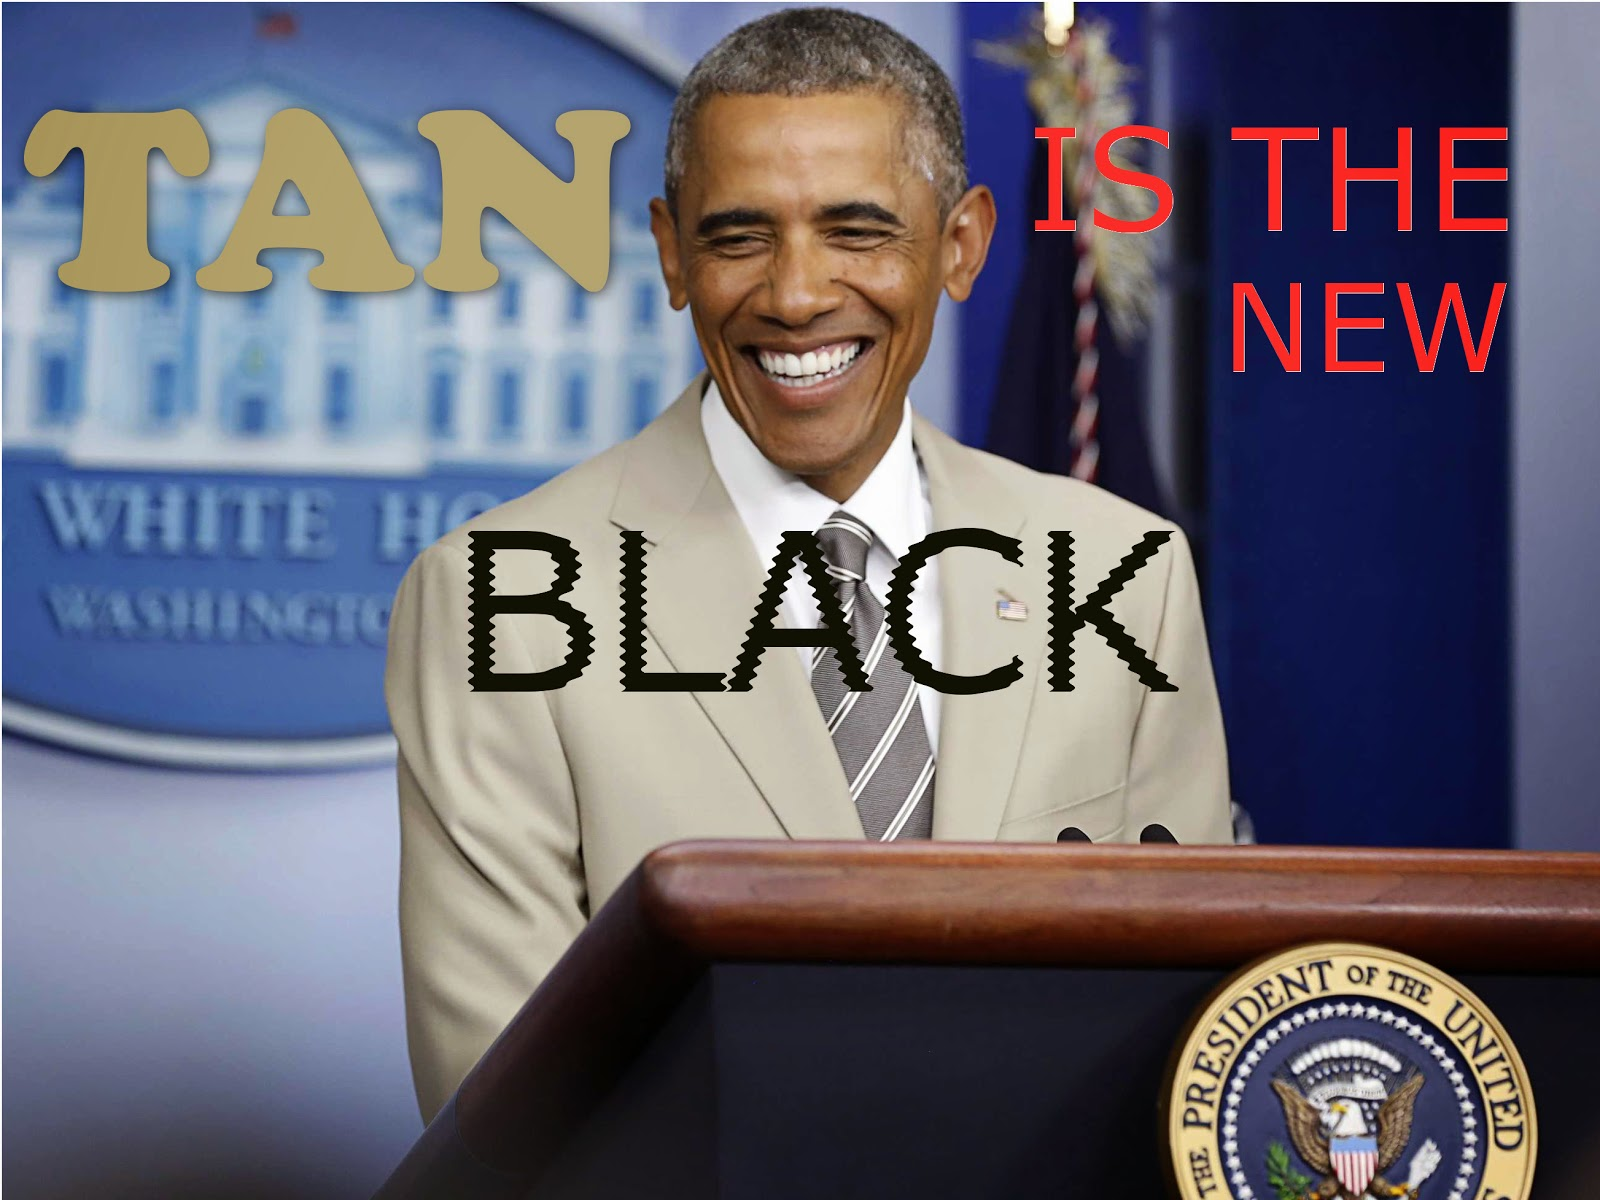 President Barack Obama in suitgate